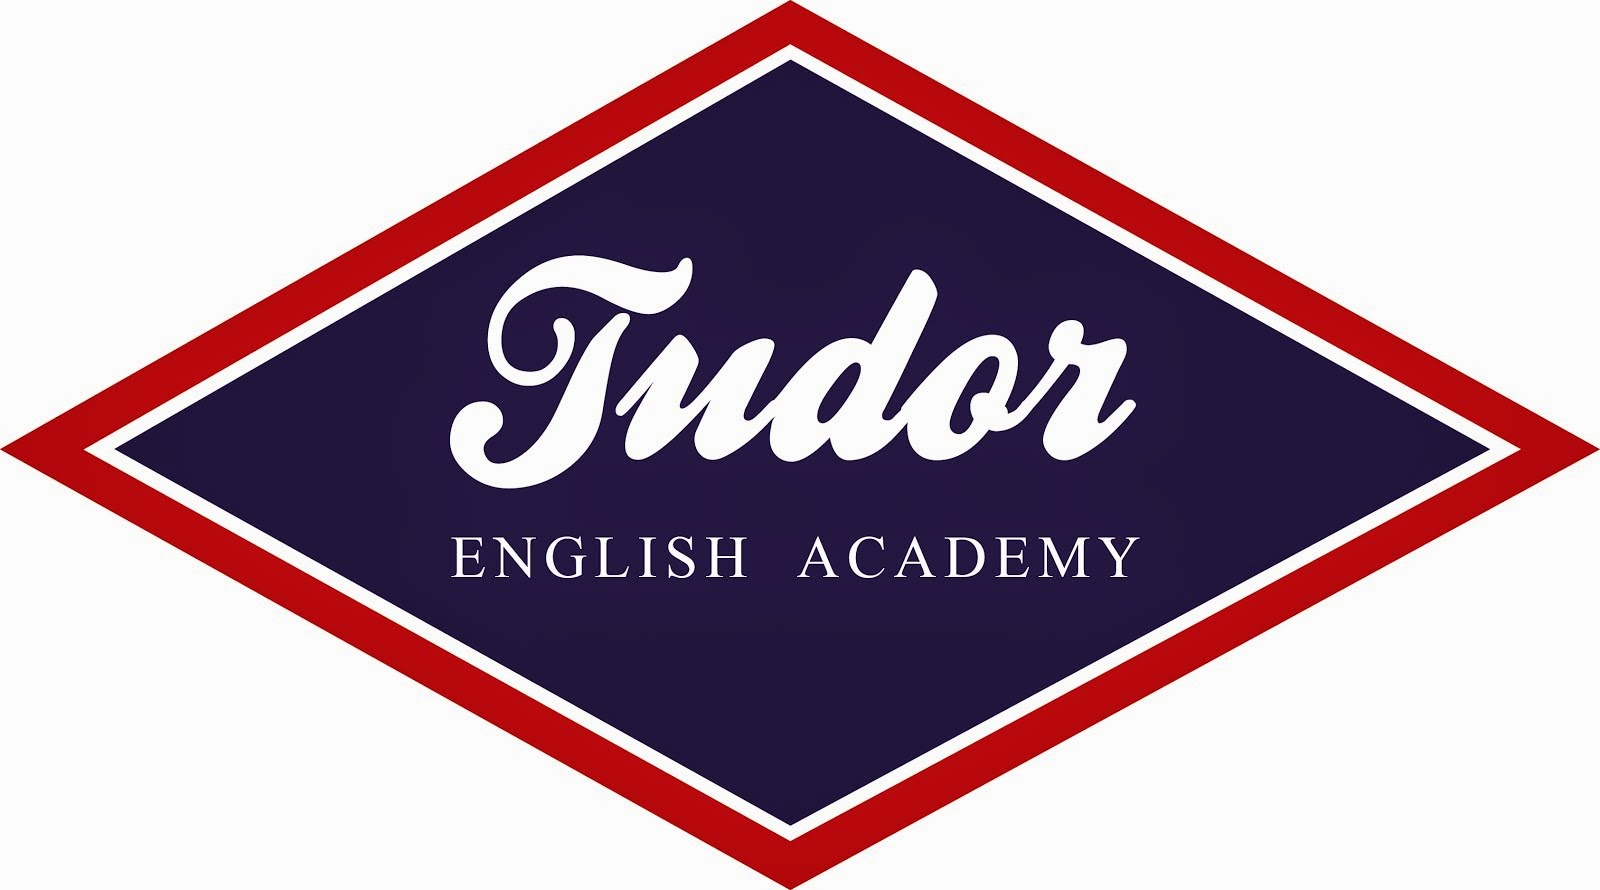 Tudor English Academy